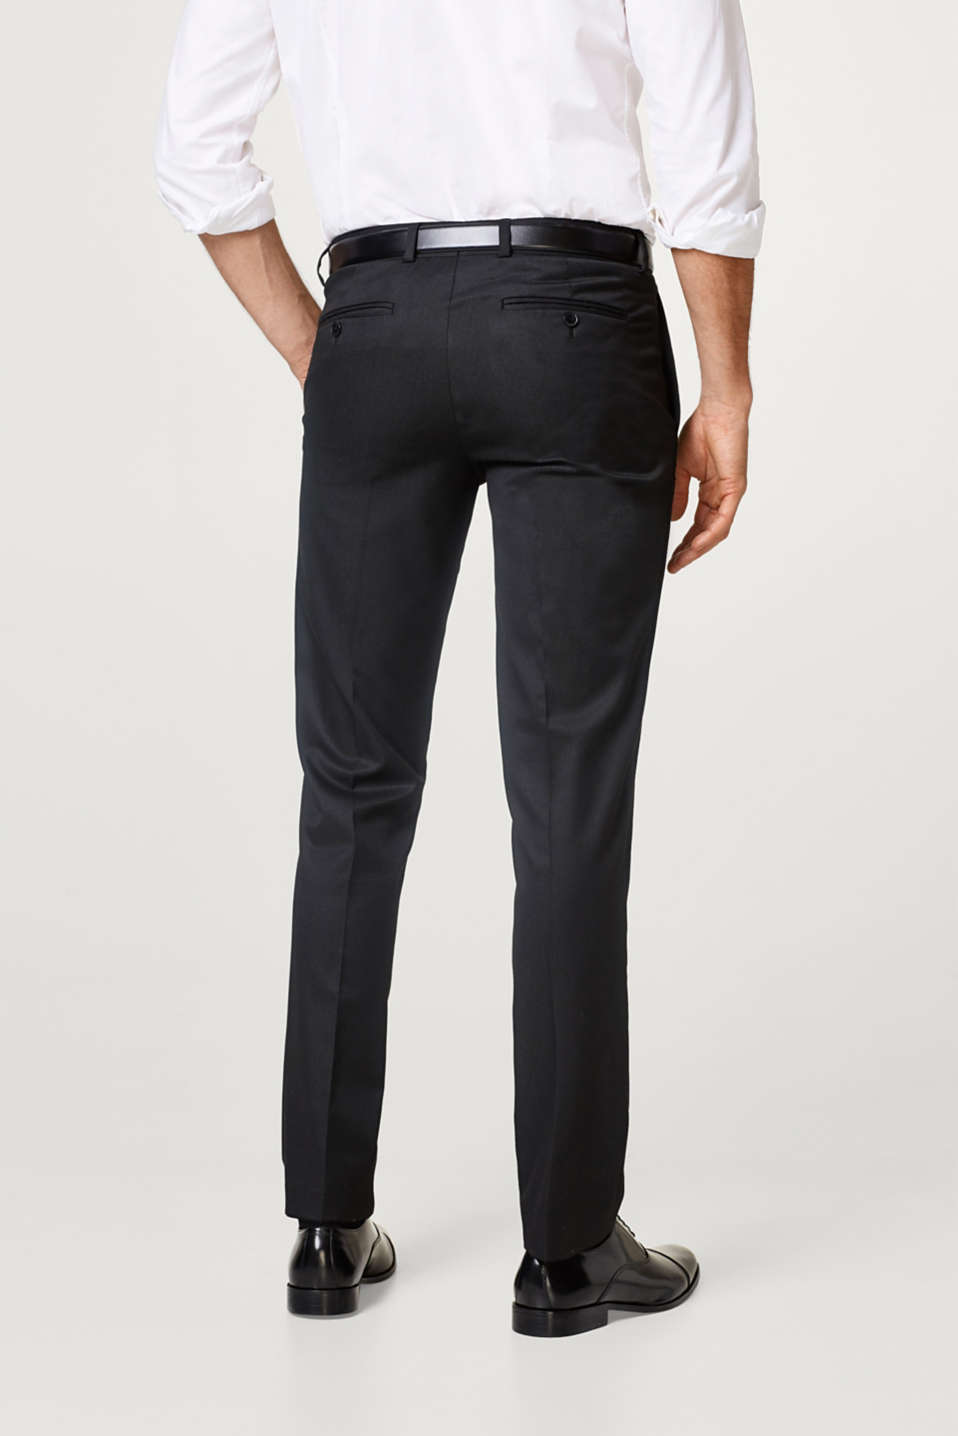 Classic suit trousers + fine, textured pattern